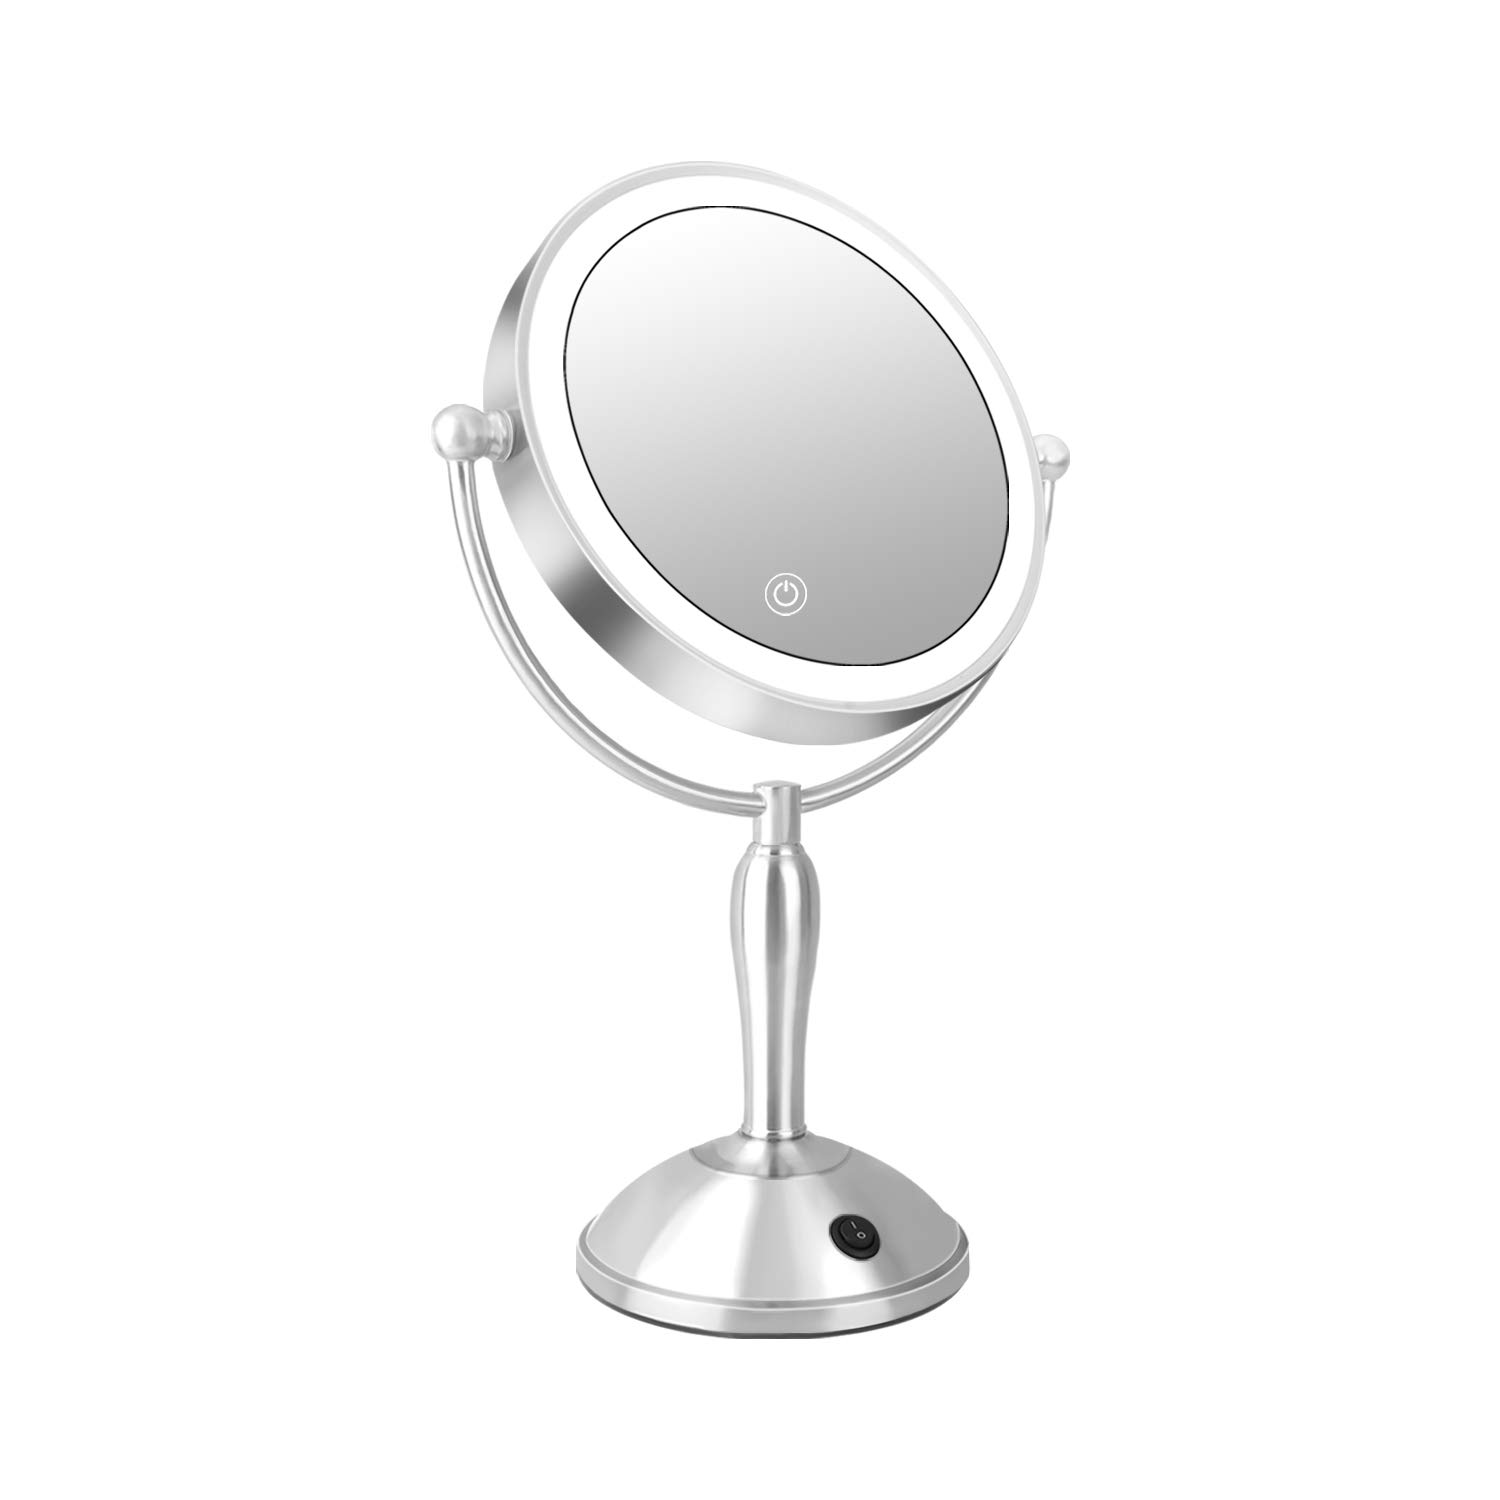 Dorafair Lighted Makeup Mirror 10x Magnification, 3 Color Adjustable Lights Double-Sided Mirror 360 Rotating Professional Vanity Mirror Makeup Mirrors, AC Adapter or 4AA Operated Brushed Nickel